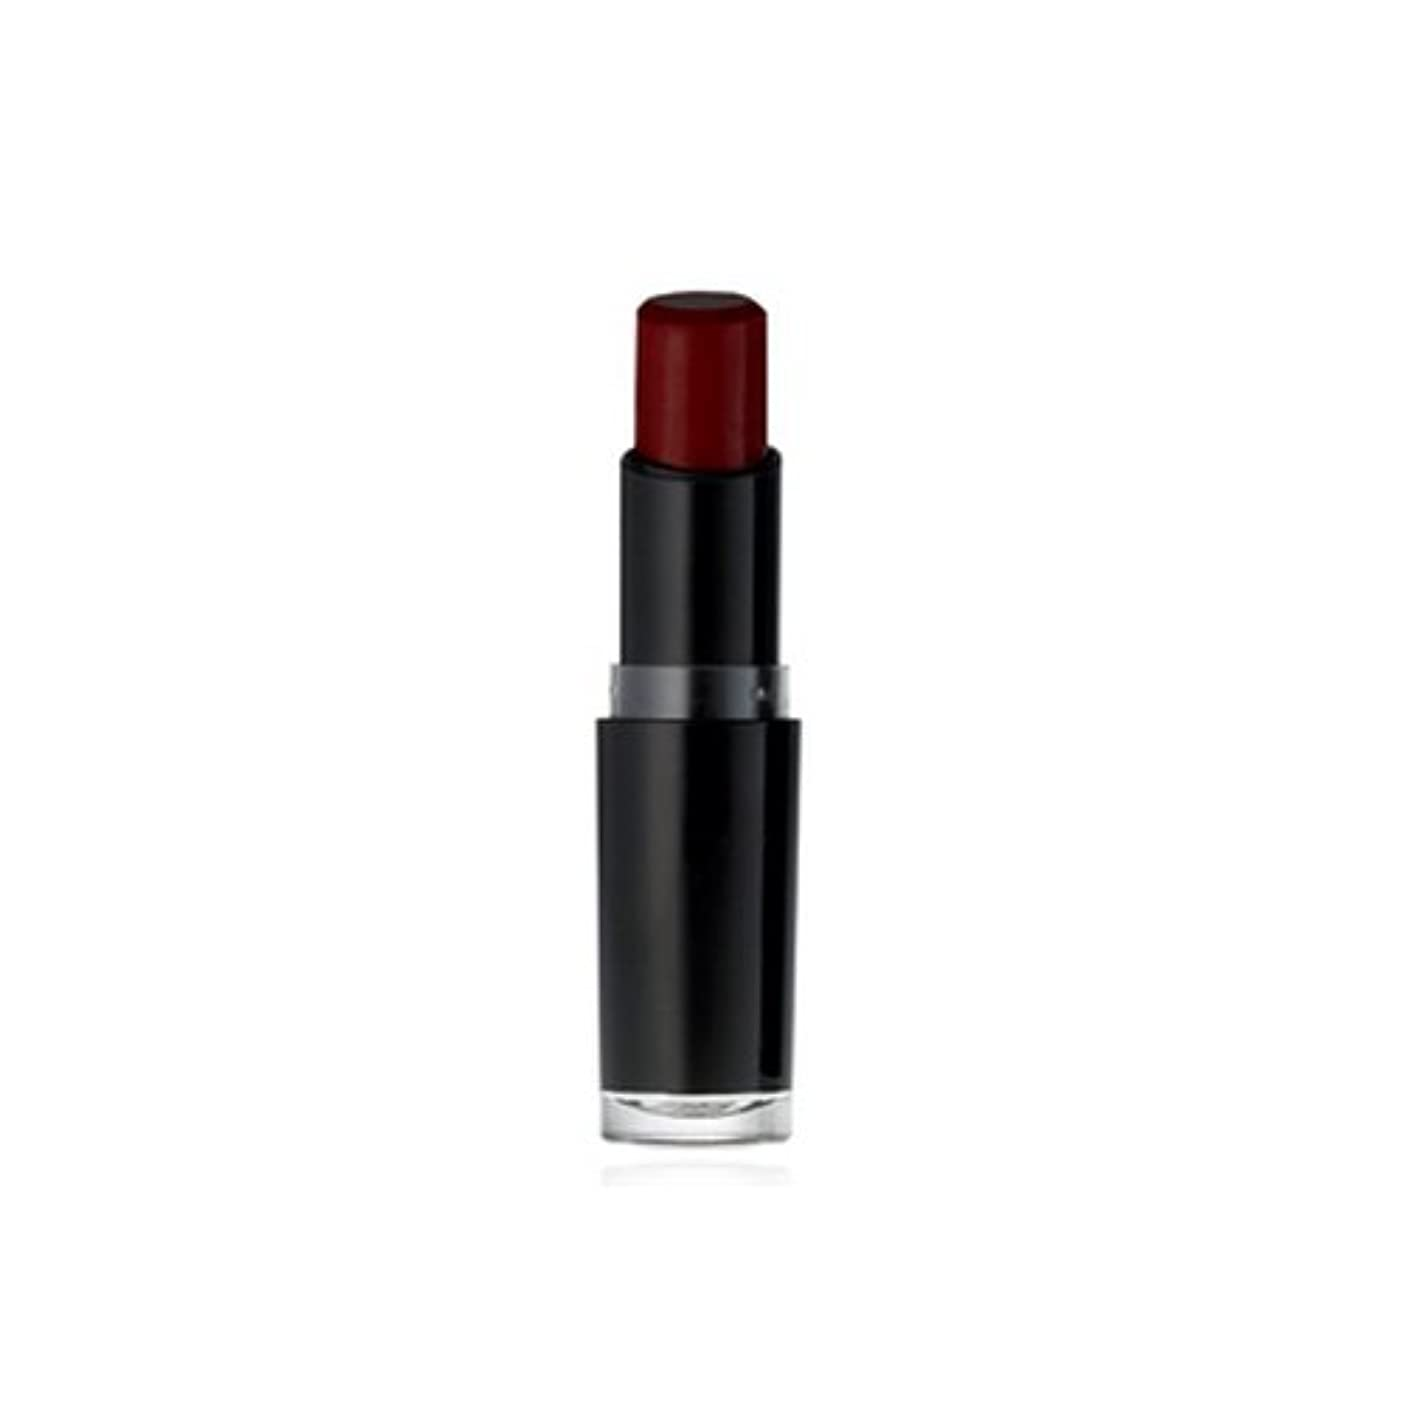 先祖現象暫定のWET N WILD Mega Last Matte Lip Cover - Cherry Bomb (並行輸入品)